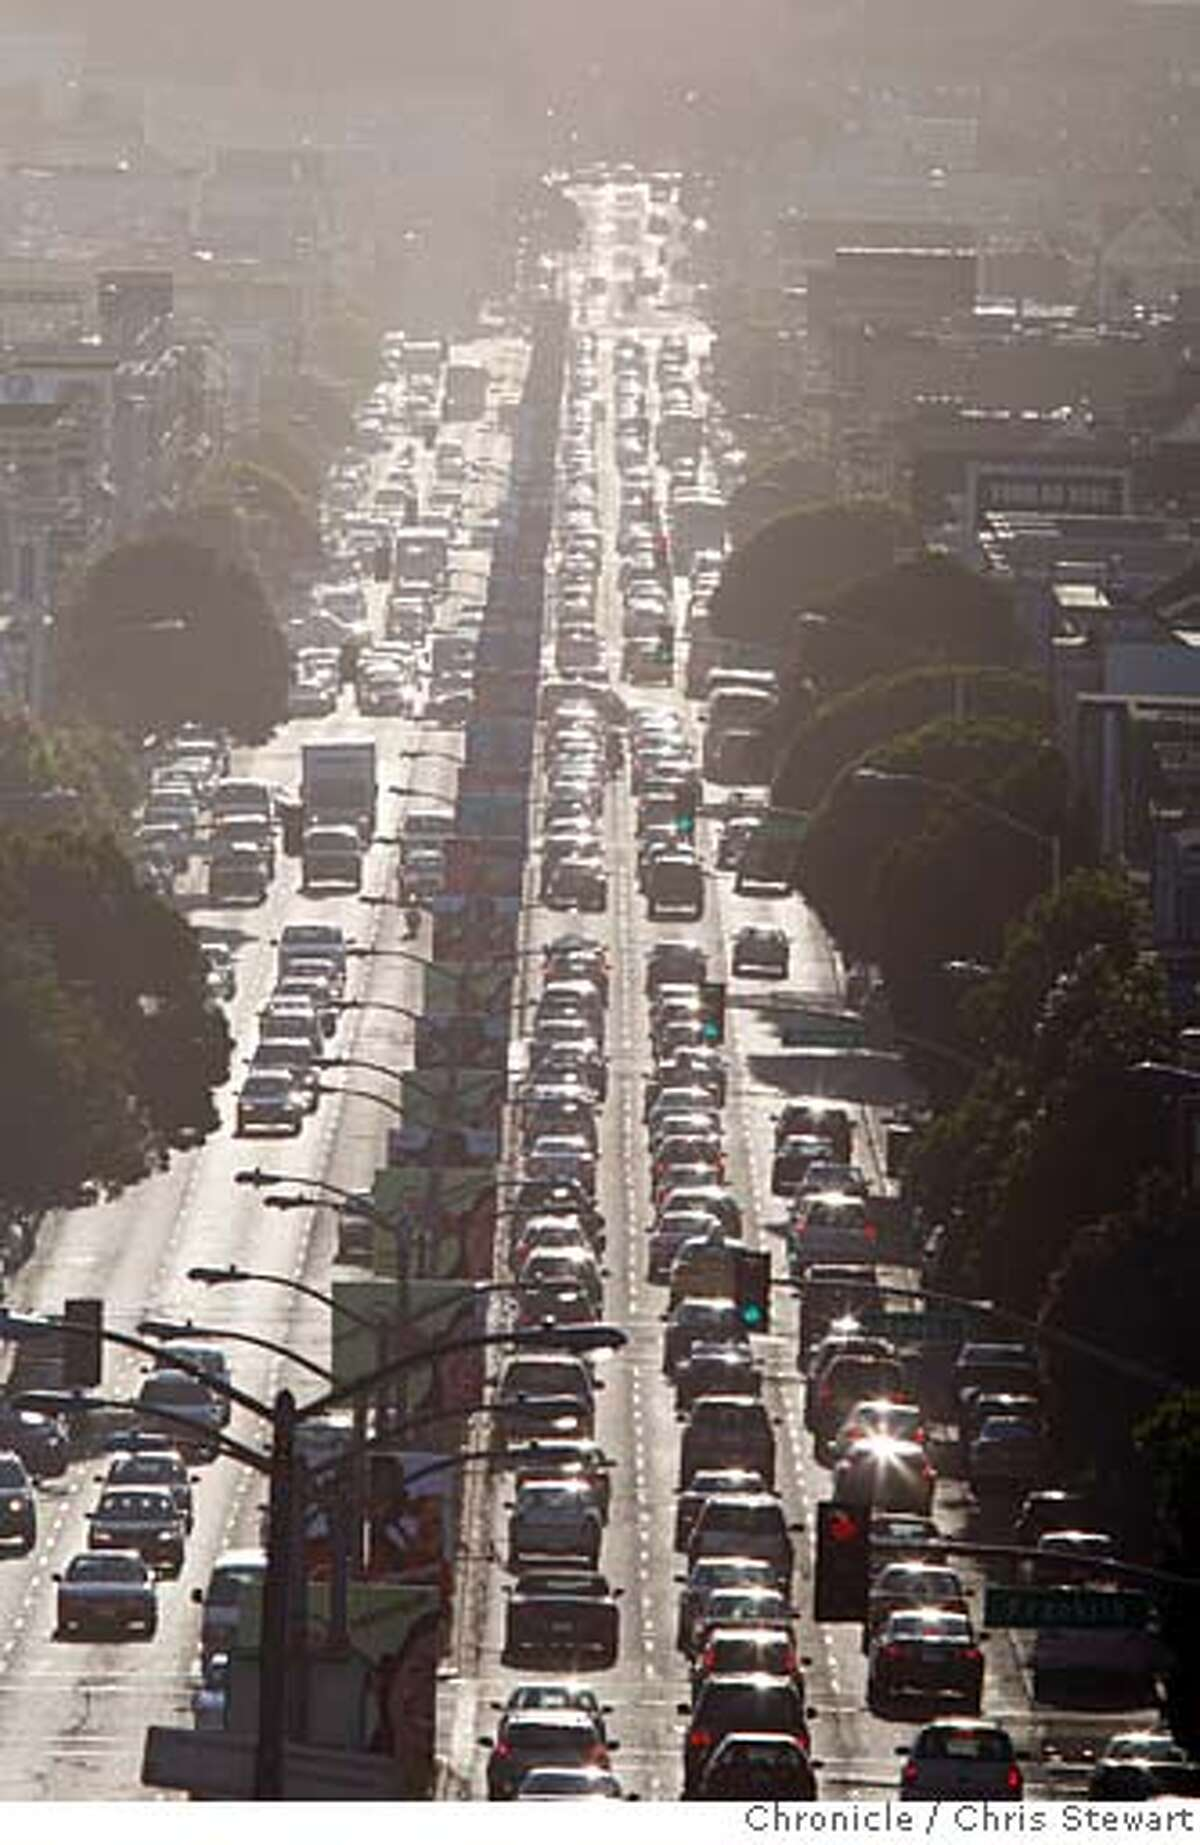 traffic_0141_cs.jpg Event on 9/17/07 in San Francisco Afternoon rush hour traffic builds on Lombard Street as it heads toward the Golden Gate Bridge in San Francisco. A study says the average American spends 60 hours a year in traffic. Photographed September 17, 2007. Chris Stewart / The Chronicle traffic